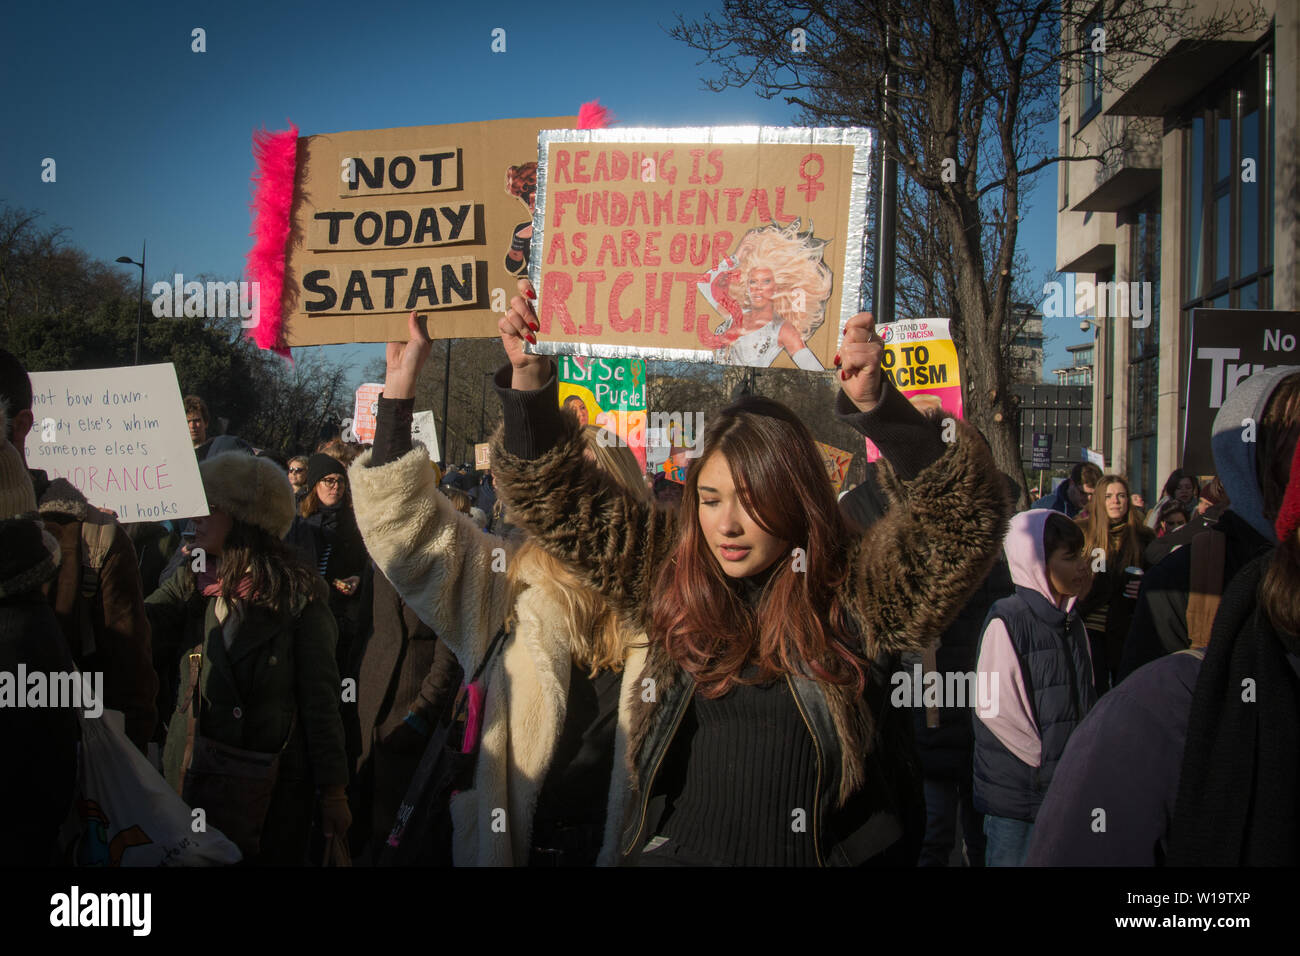 Women's March, London, UK, 21st January 2017. Women carry placards with humerous slogans as people take to the streets in London to protest the day after the inauguration of President Donald Trump. Up to 10,000 took part in London as women worldwide marked the day by marching in an act of international solidarity. Many carried placards referencing statements made by Donald Trump, considered by many as anti-women or otherwise offensive. - Stock Image